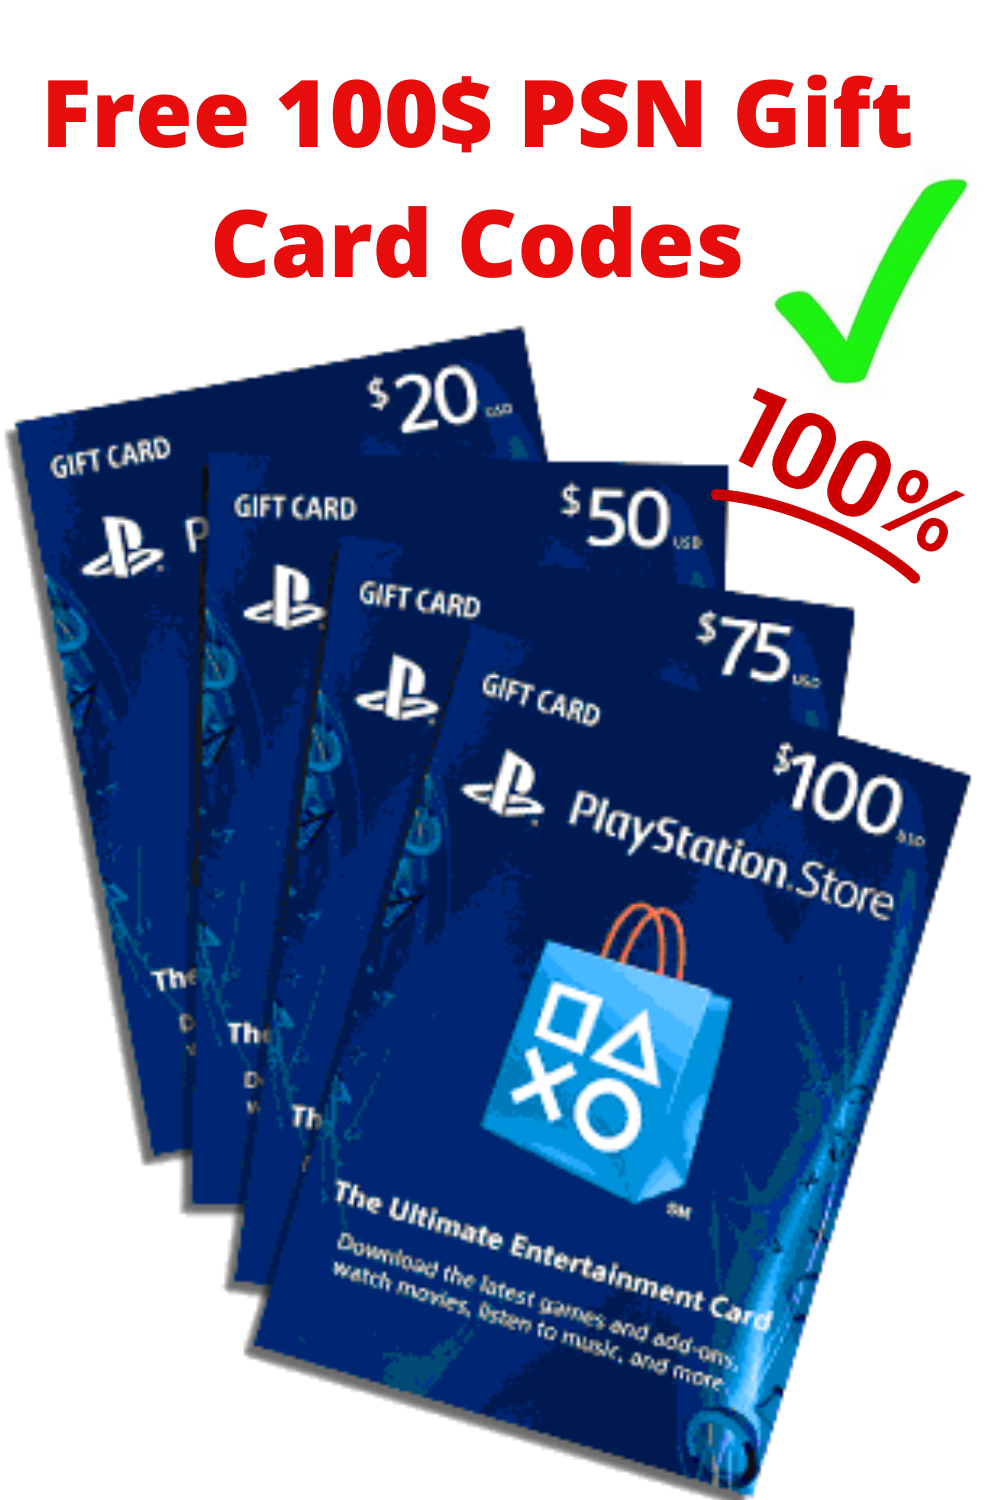 Free Playstation Psn Gift Card Code Generator Online 2020 Free Psn Codes Without Any Survey Ps4 Gift Card Itunes Card Codes Free Itunes Gift Card